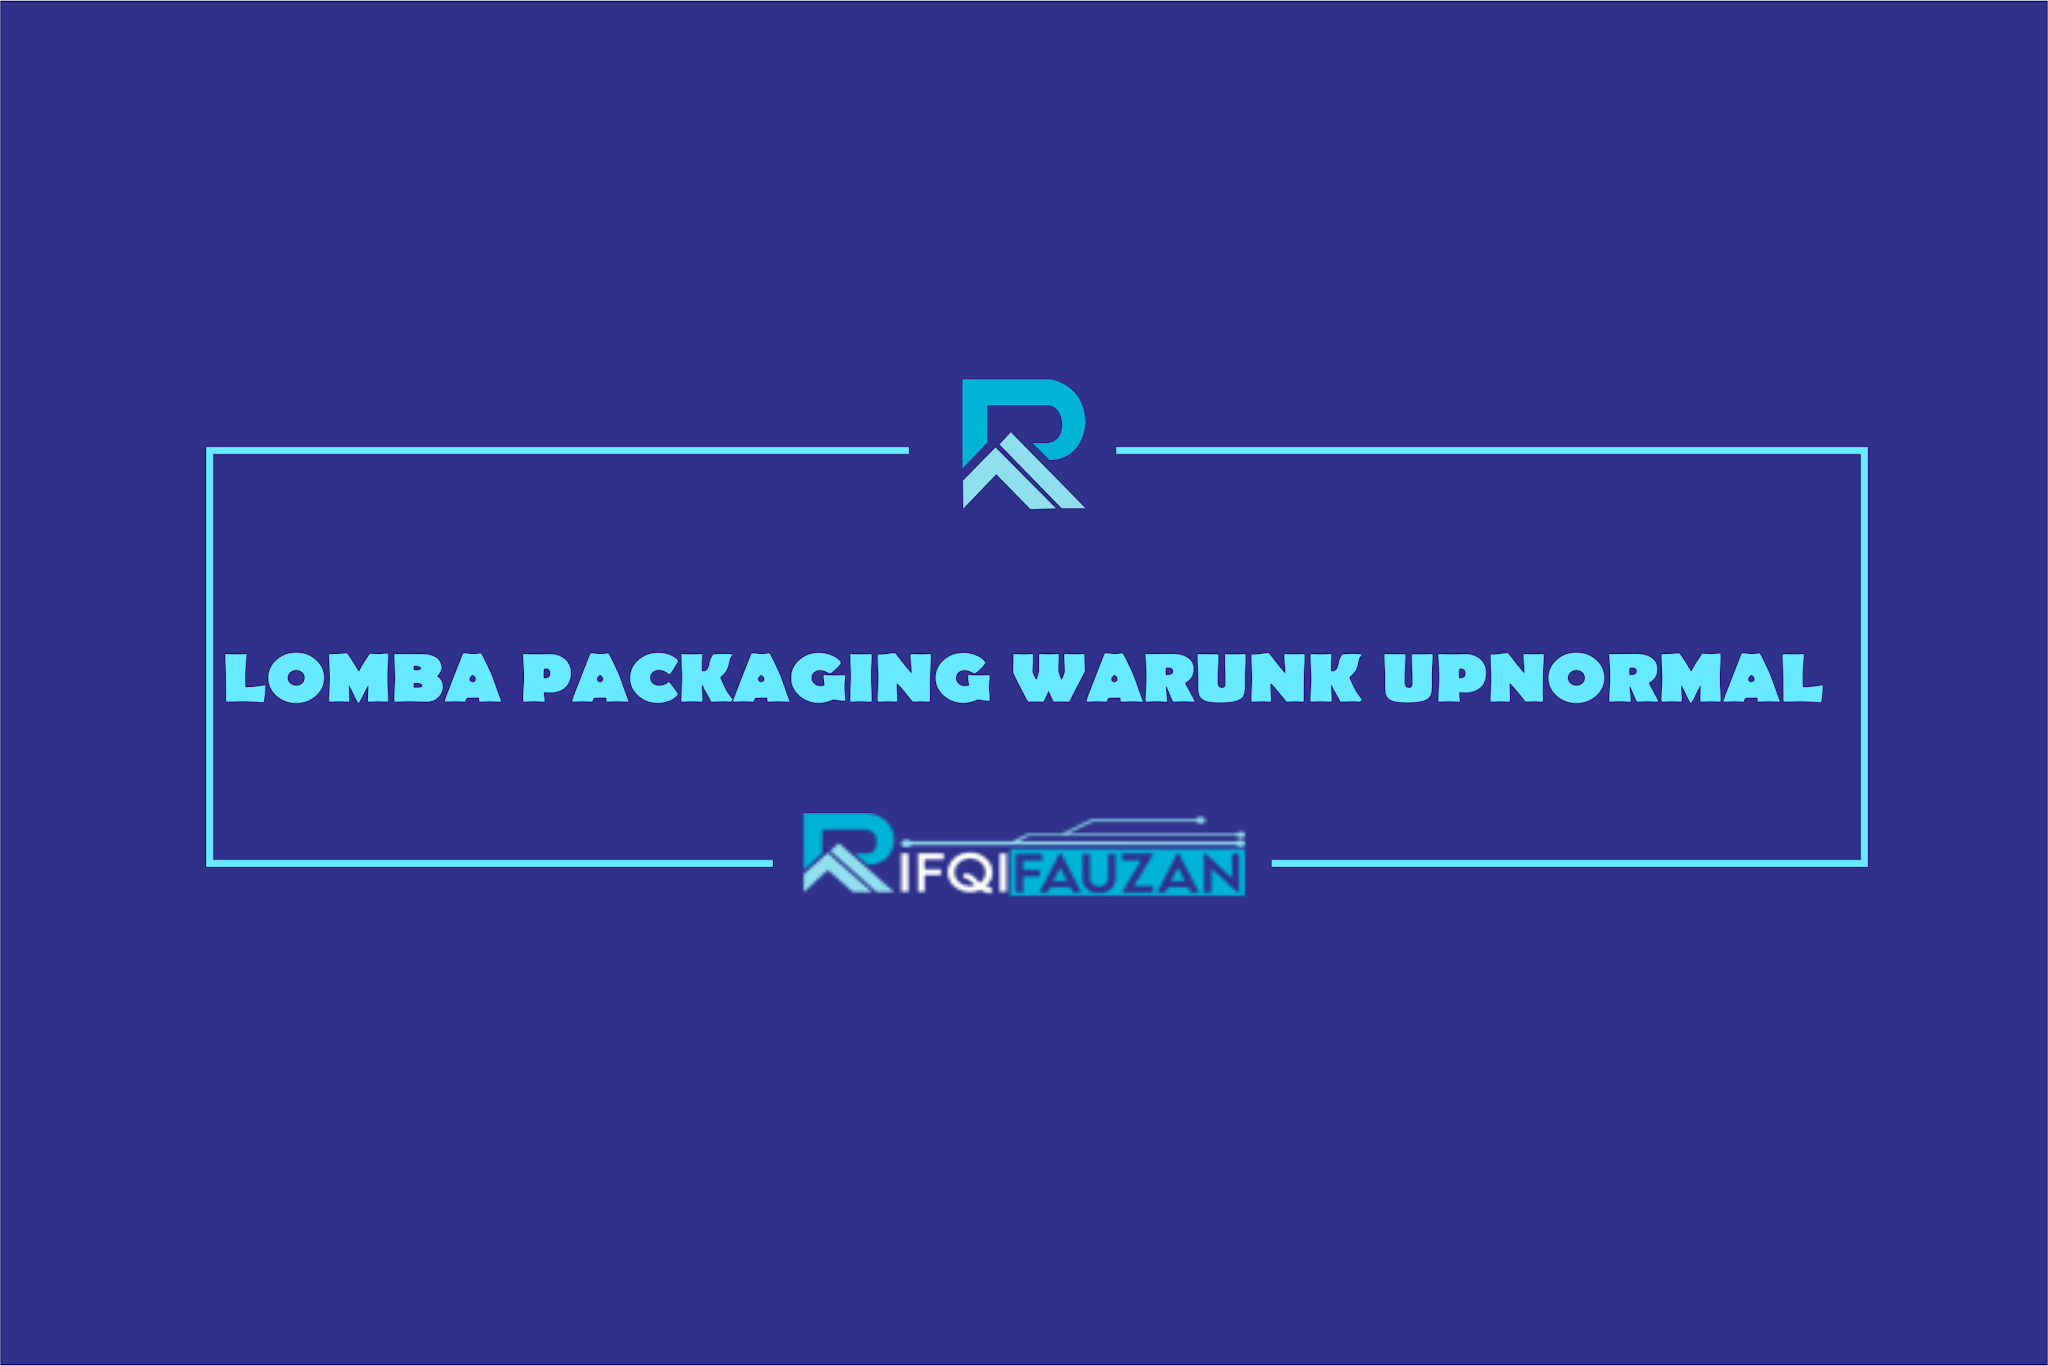 LOMBA PACKAGING DESAIN WARUNK UPNORMAL